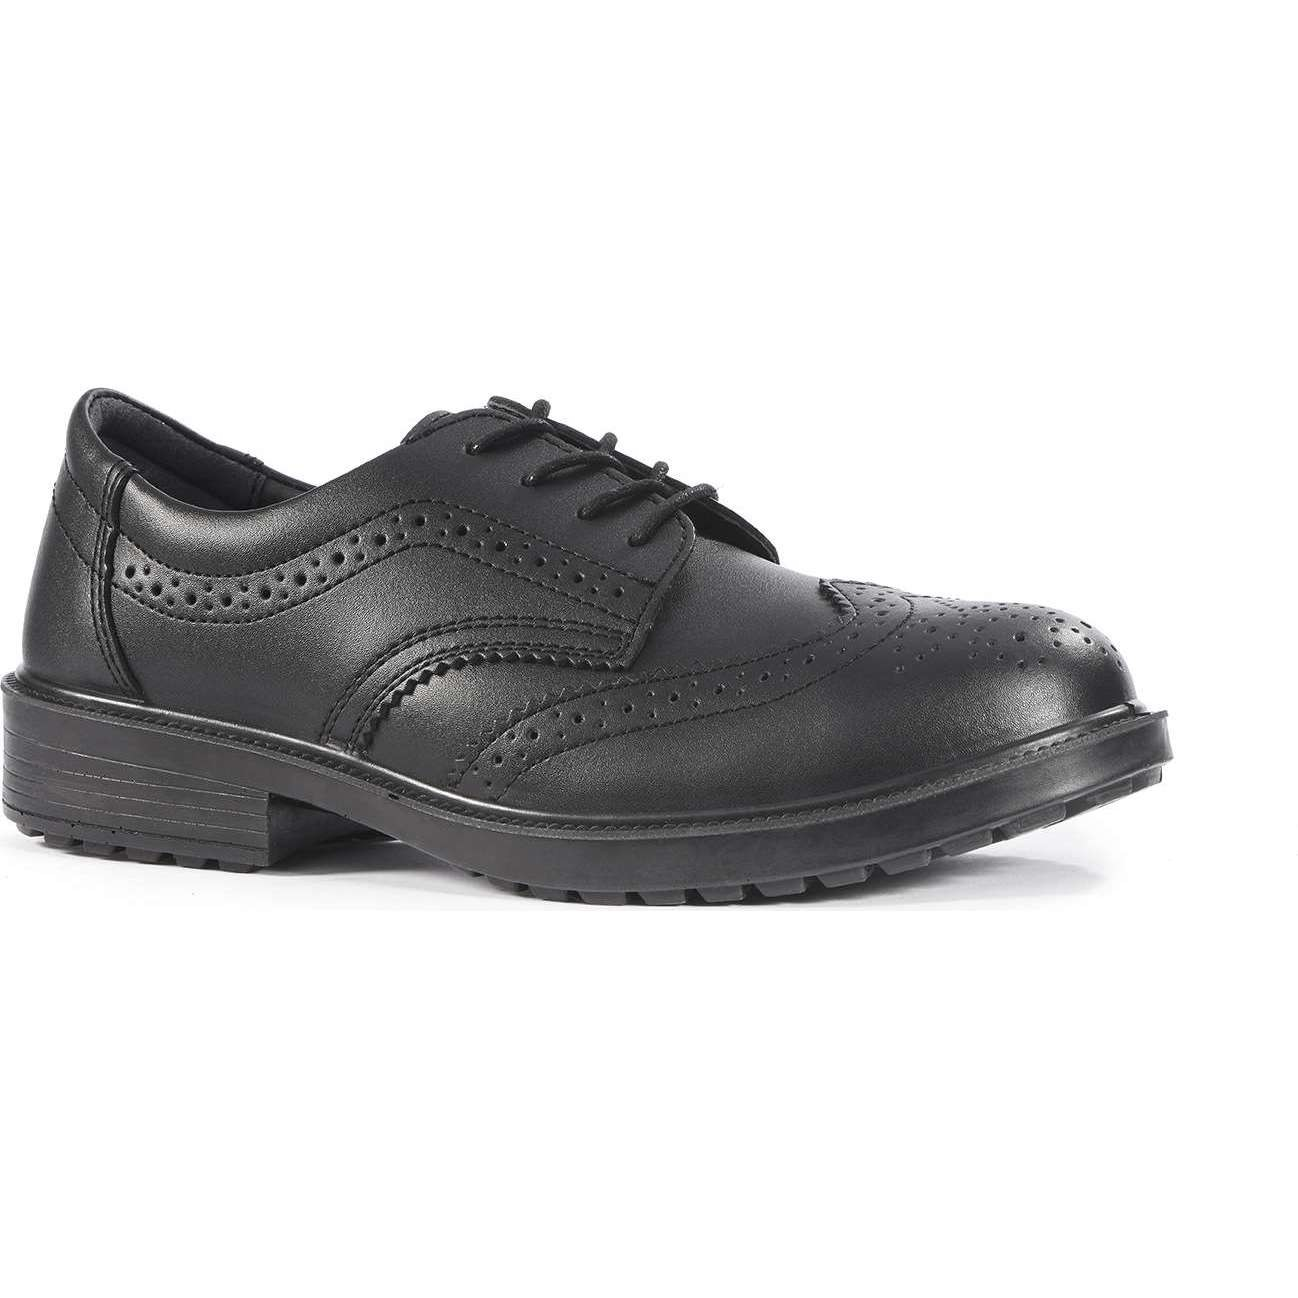 Pro Man Brooklyn ESD S3 Safety Brogue